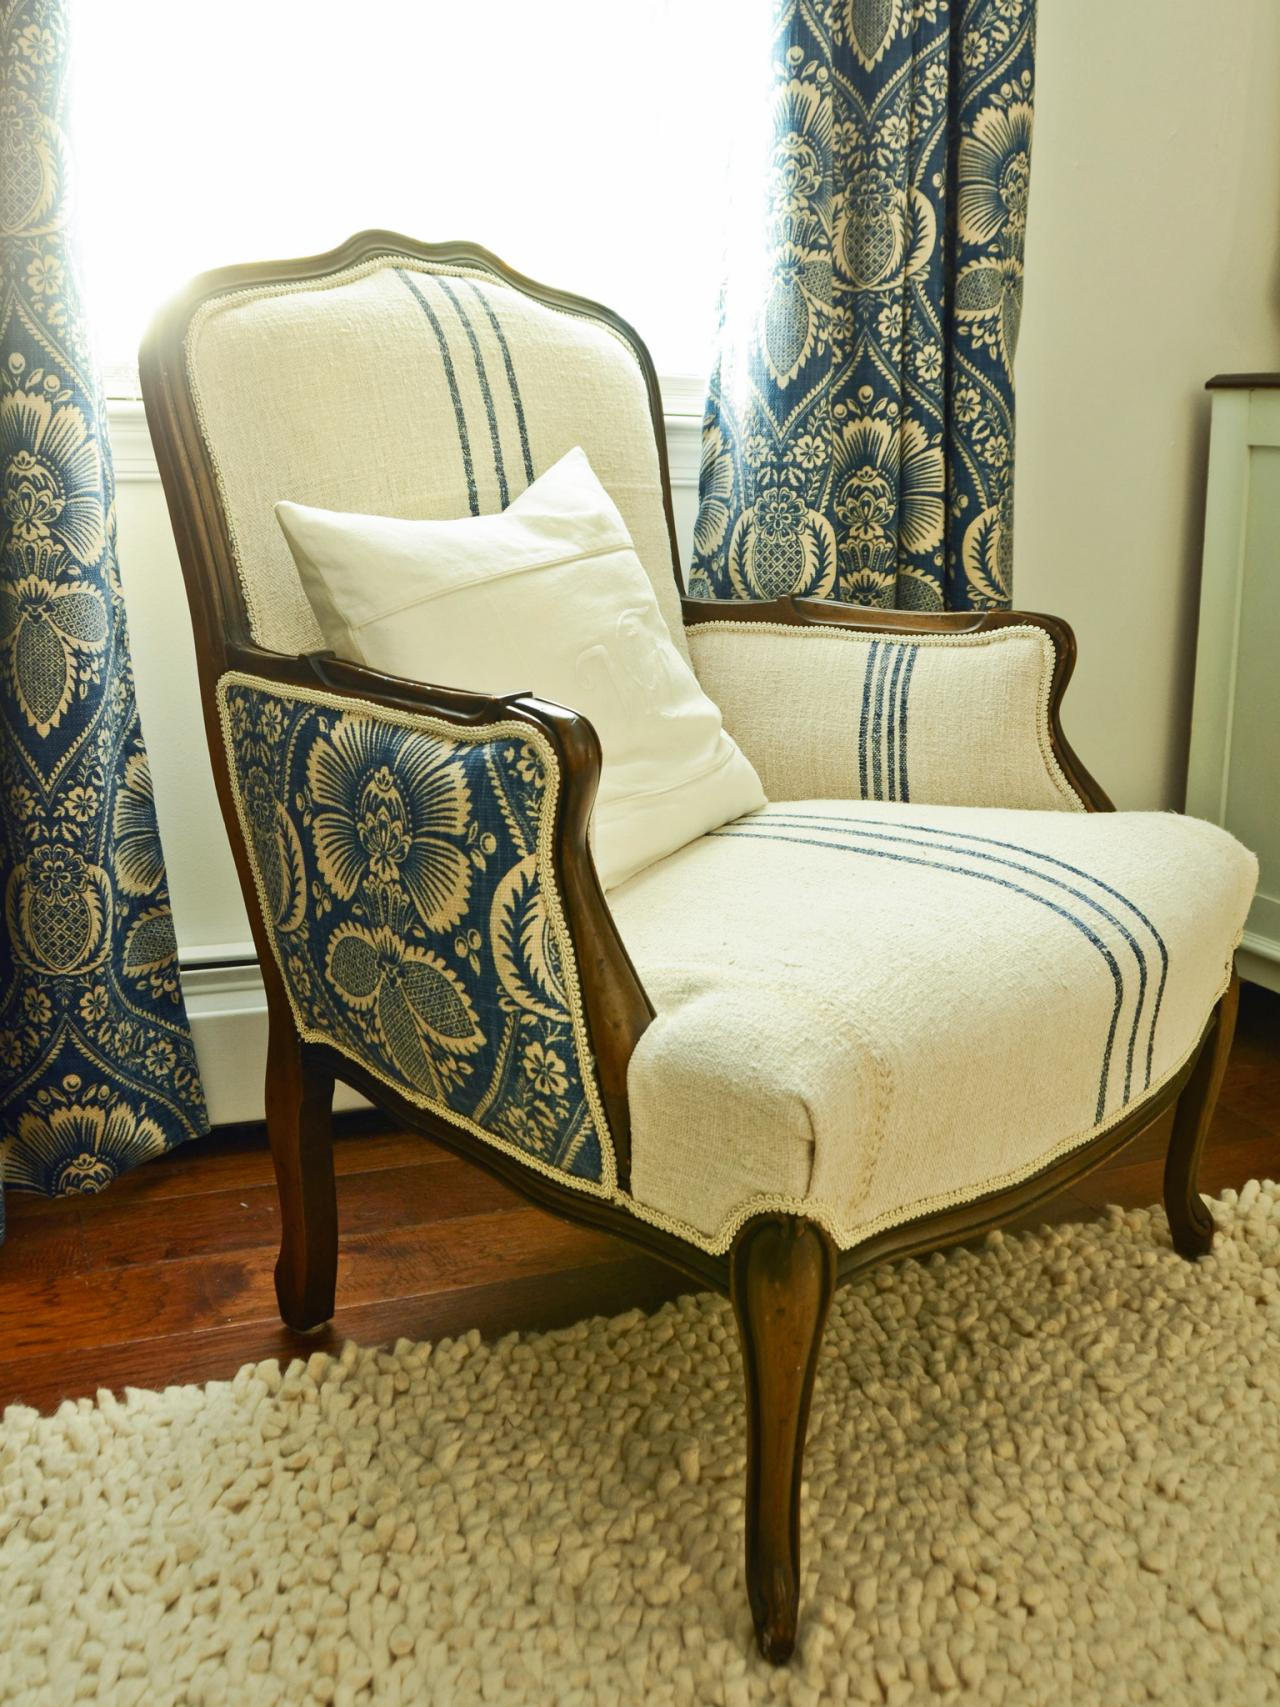 How To Reupholster An Arm Chair Hgtv